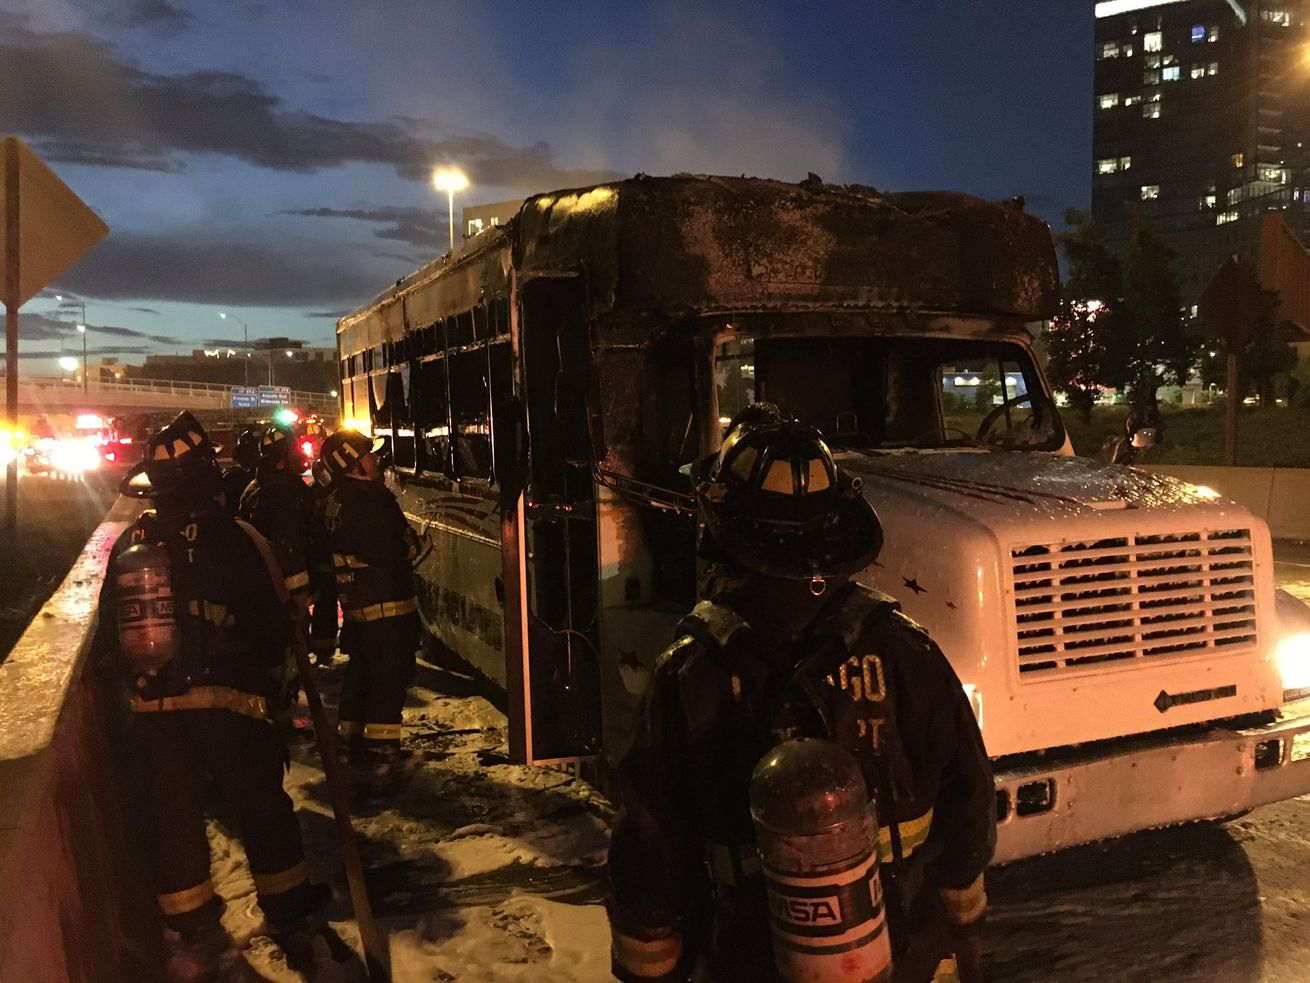 Party bus catches fire on Kennedy Expressway